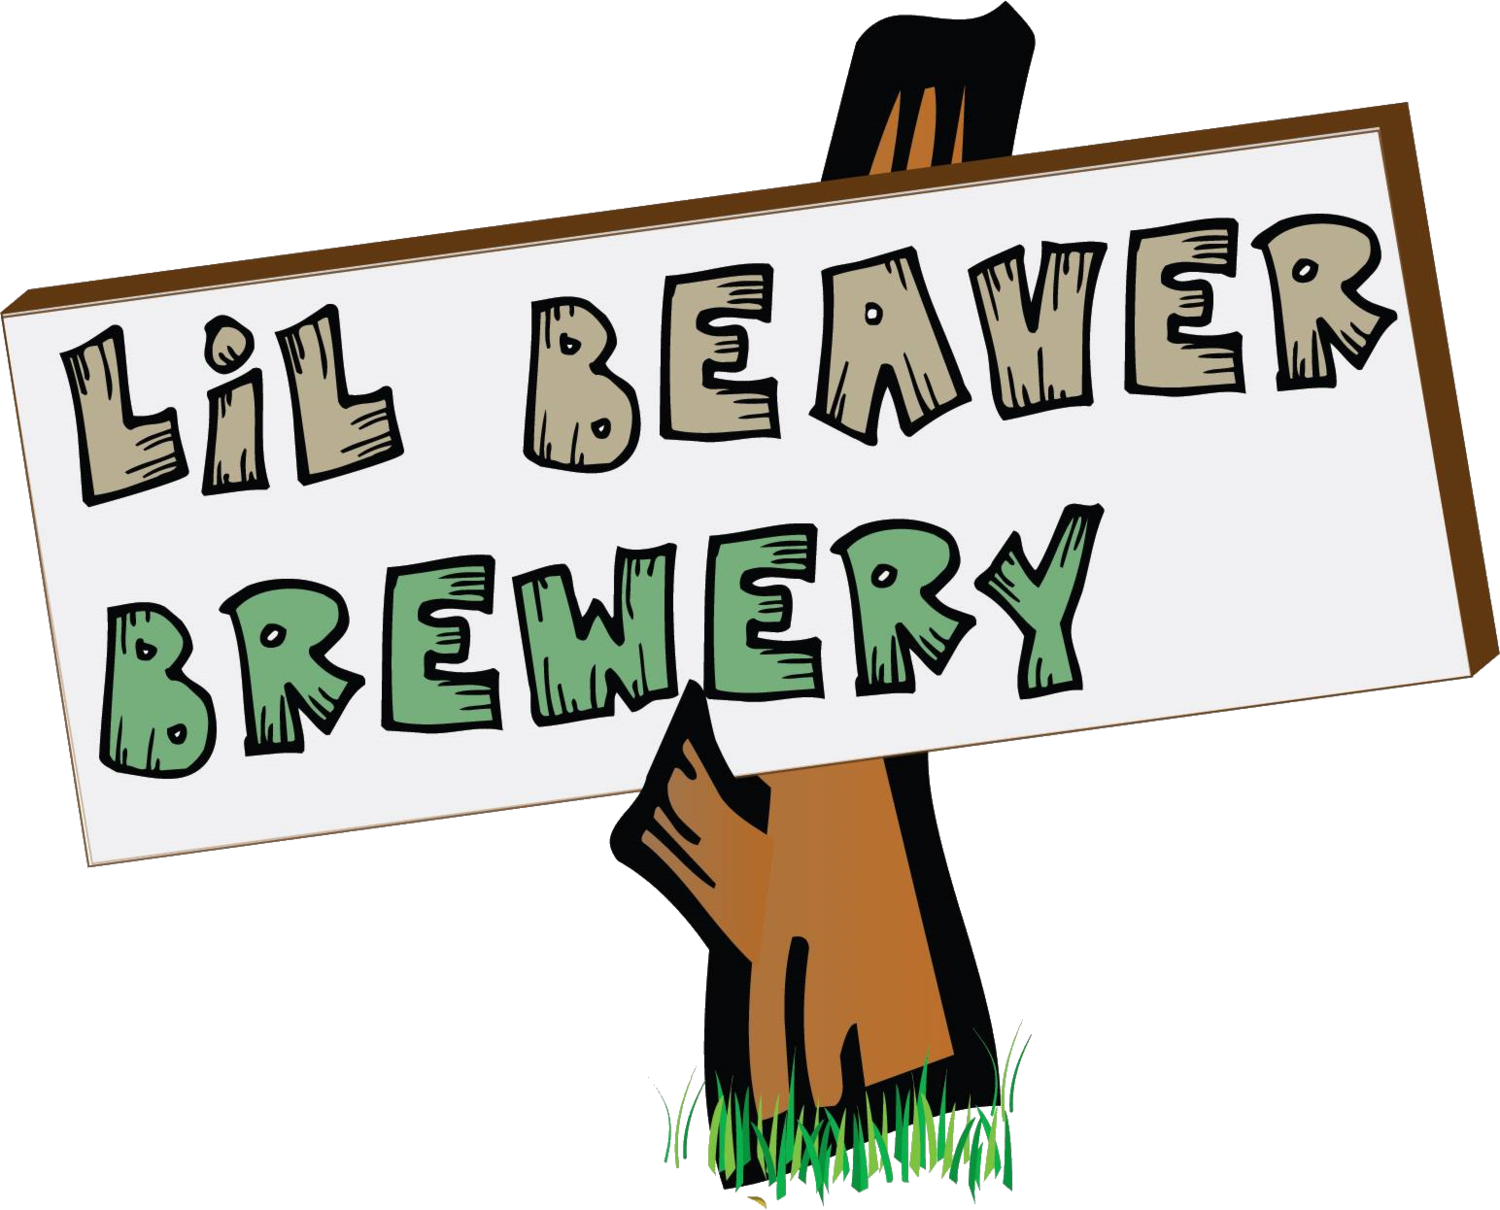 A lil history brewery. Woodland clipart beaver